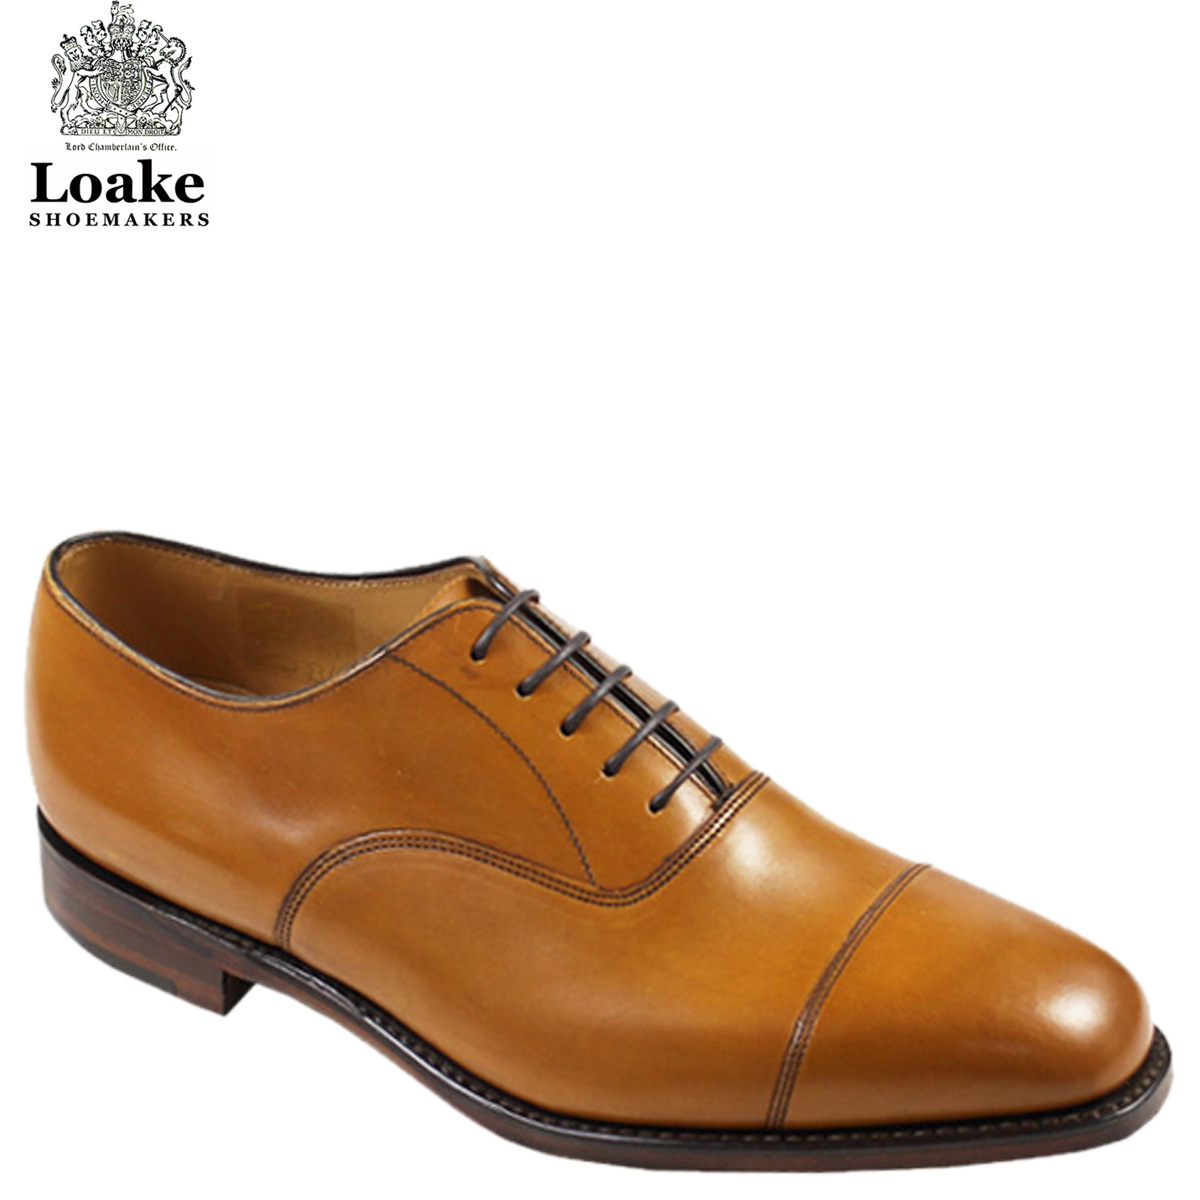 7780778d ... Rourke craftsmen make men's shoes. Is a great tradition in 2007, as a  Royal Warrant (United Kingdom Royal warrant) brand officially certified and  ...